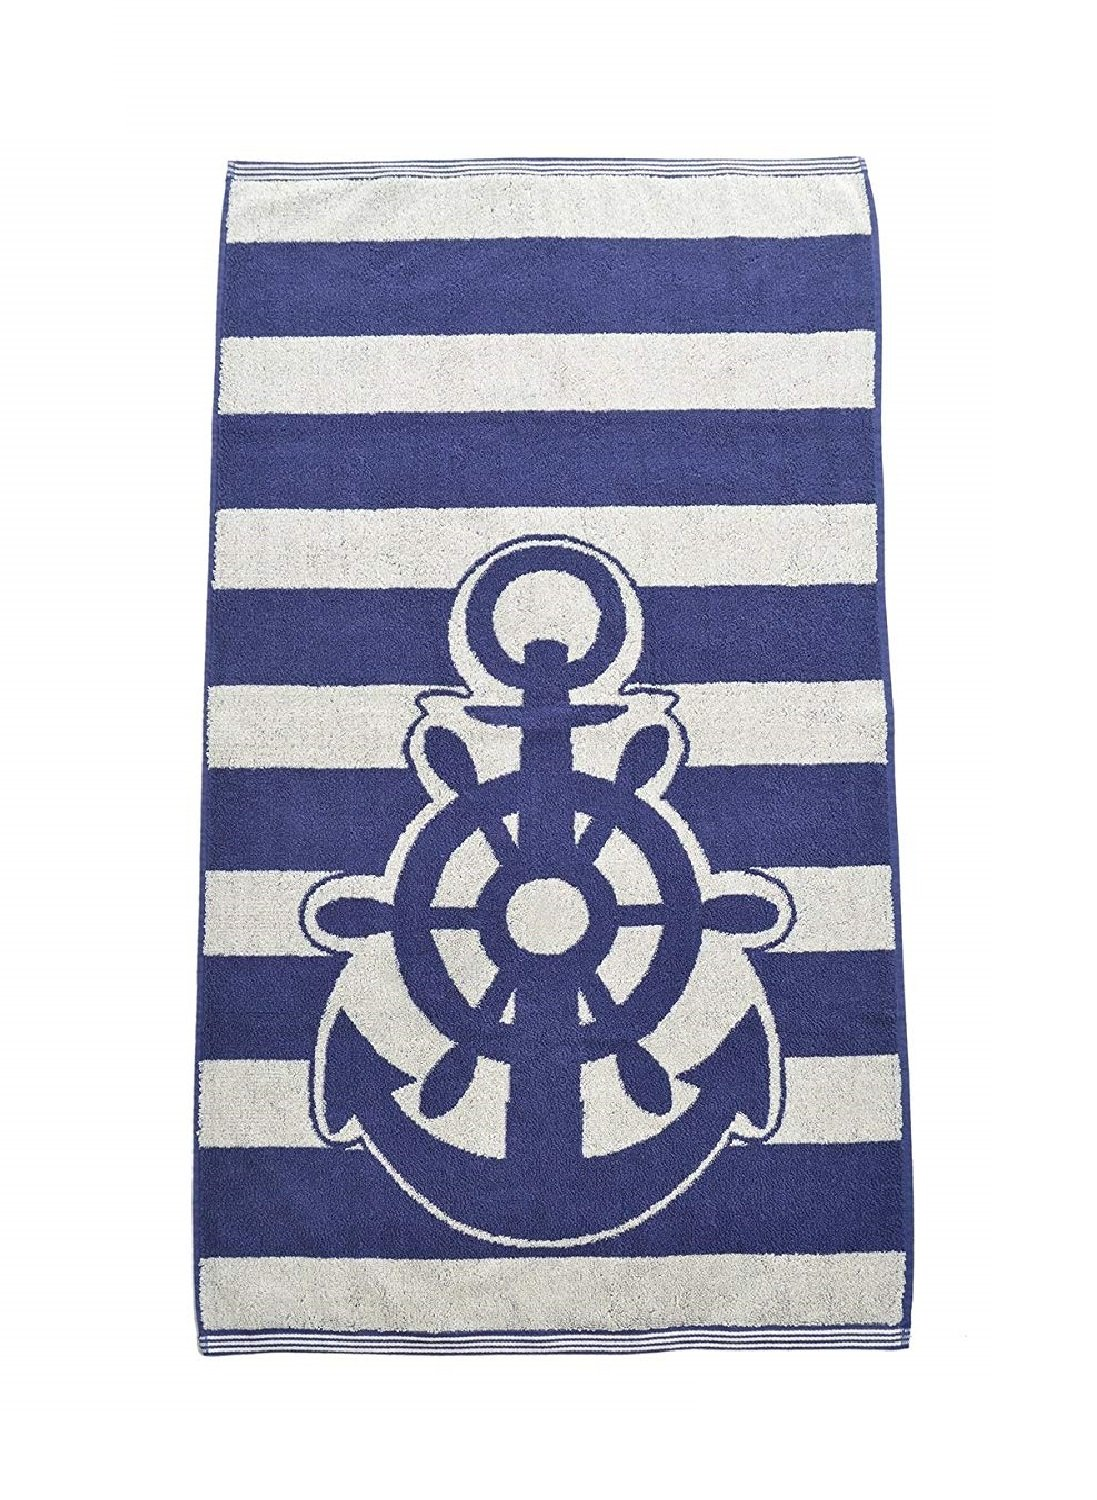 Allure Bath Fashions Beach Towel Jacquard Woven Anchor Beach Towels for Men, Woman, Adults, Kids, Sunbeds, Sun Loungers, Swimming in Blue and White - Pack of 1